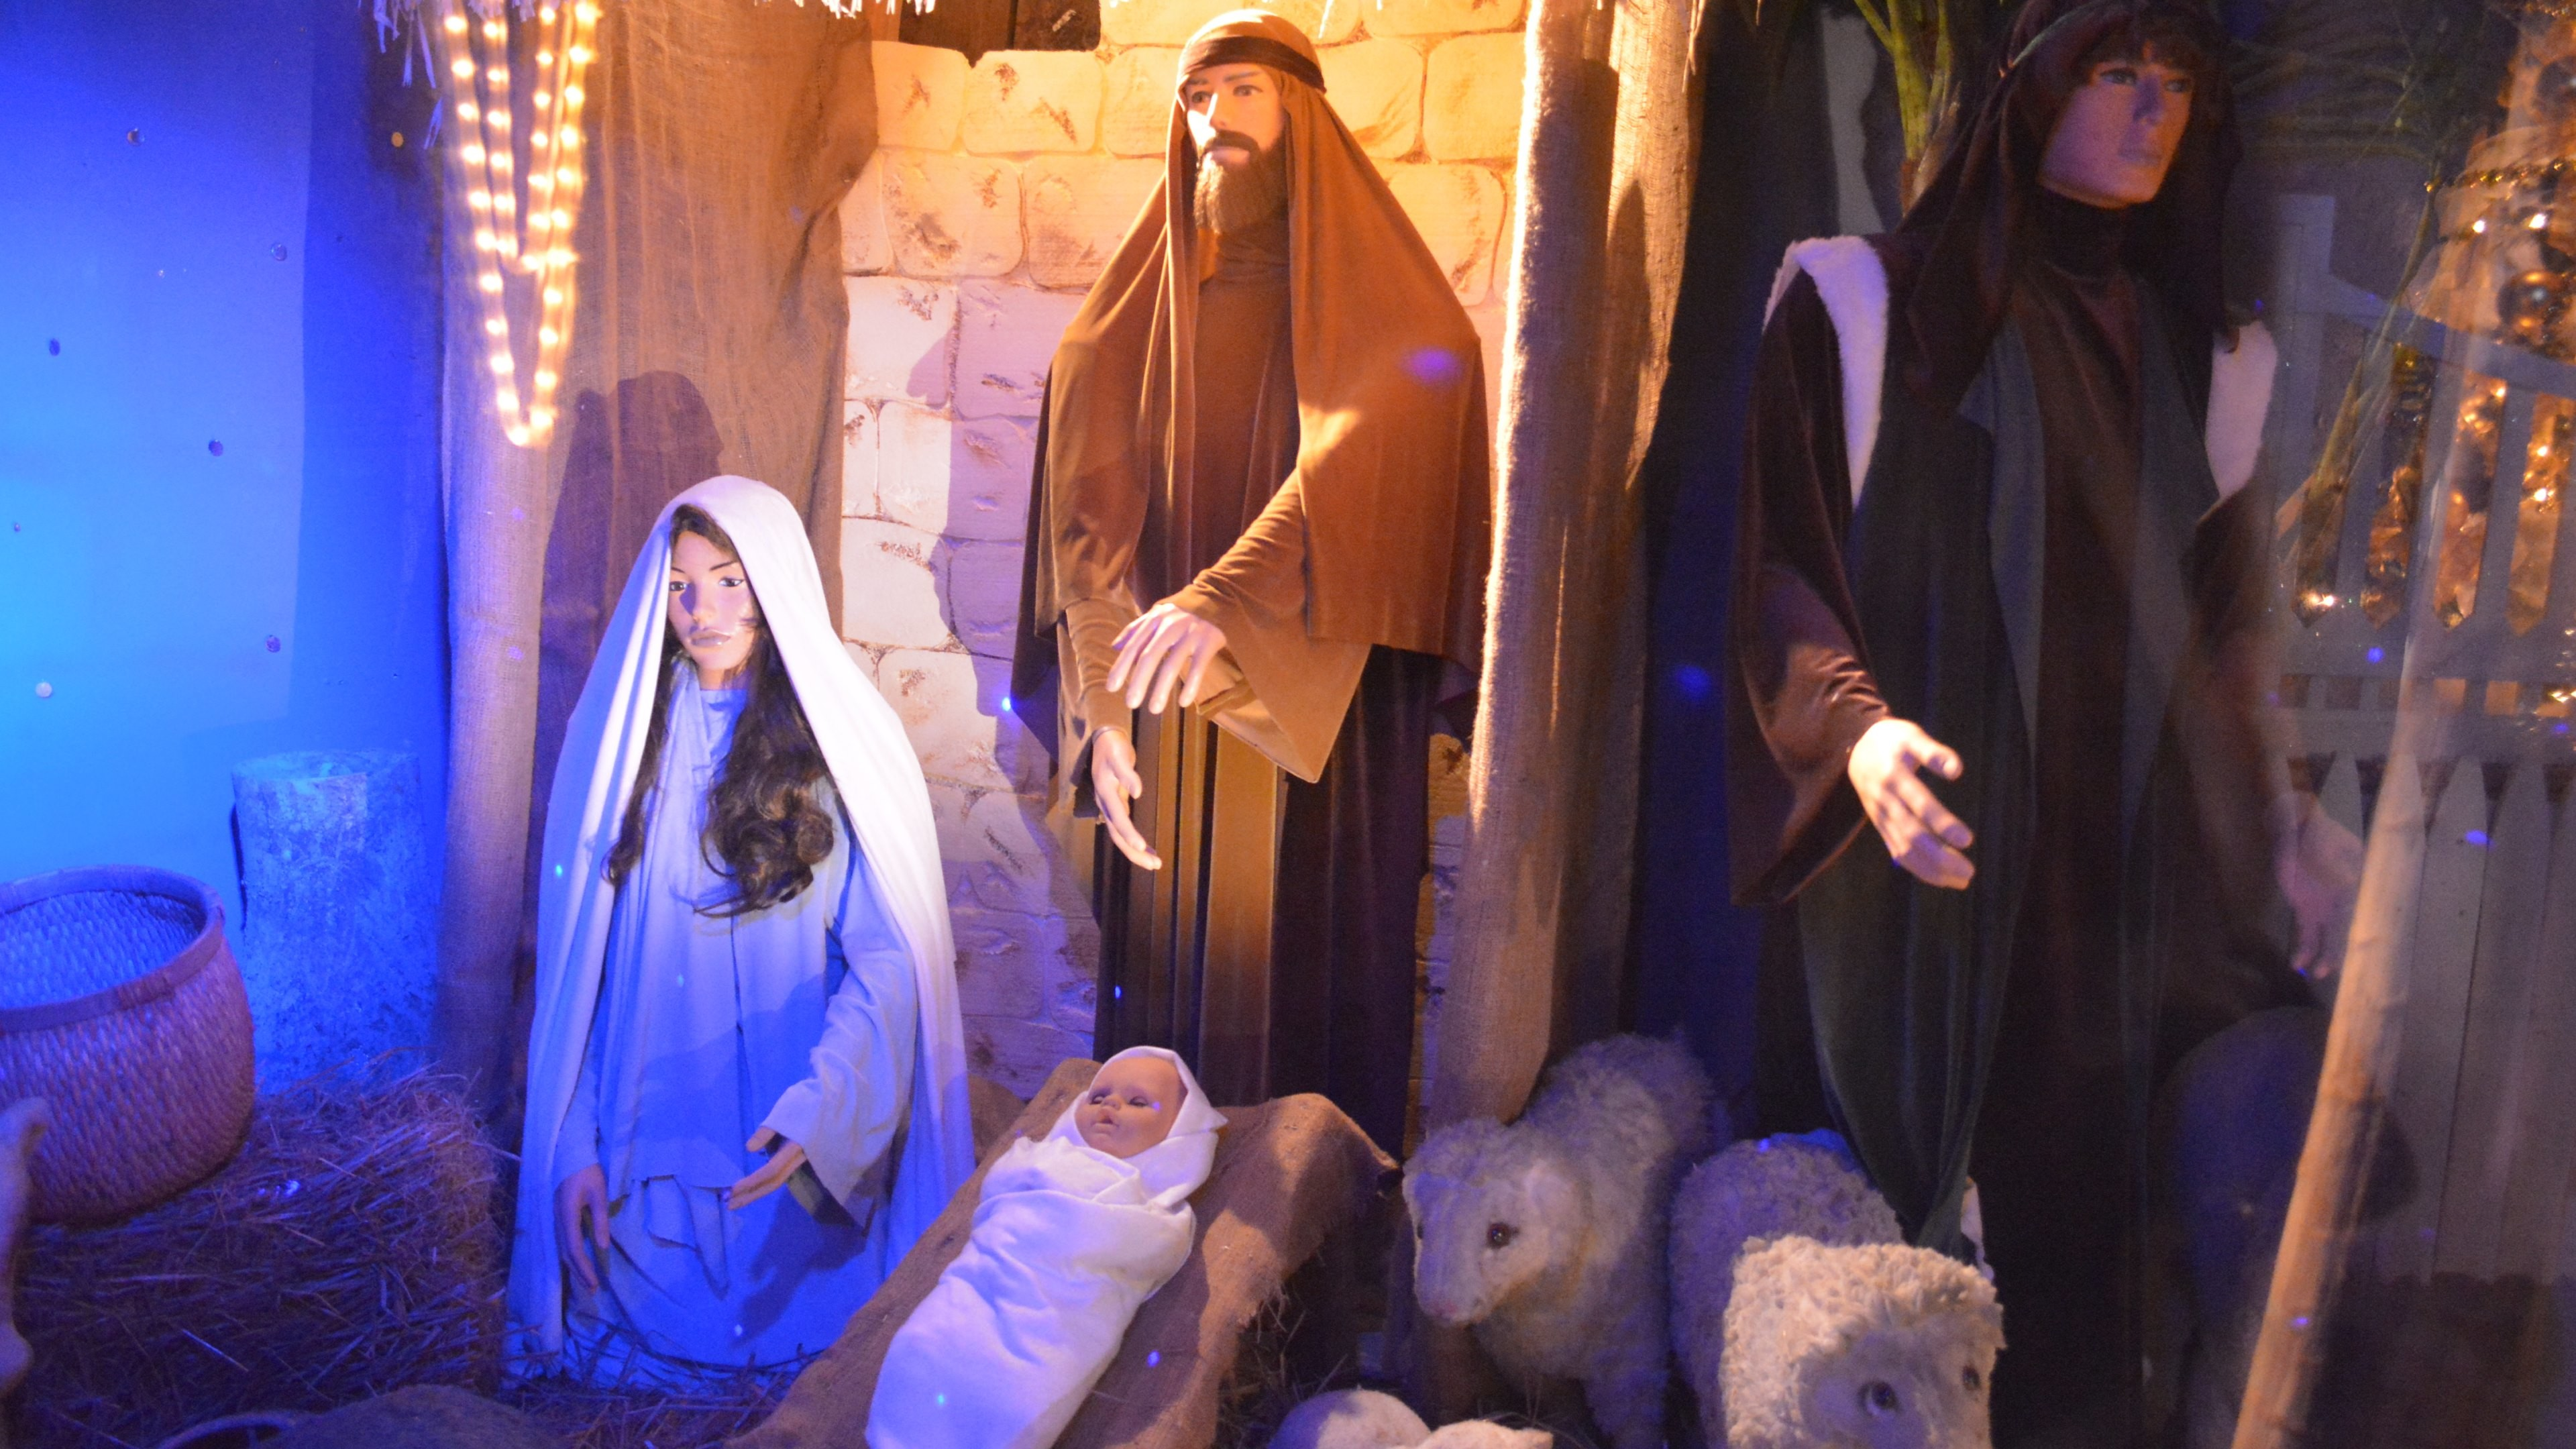 Birth of Jesus scene at every Christmas HD Wallpapers. 4K Wallpapers